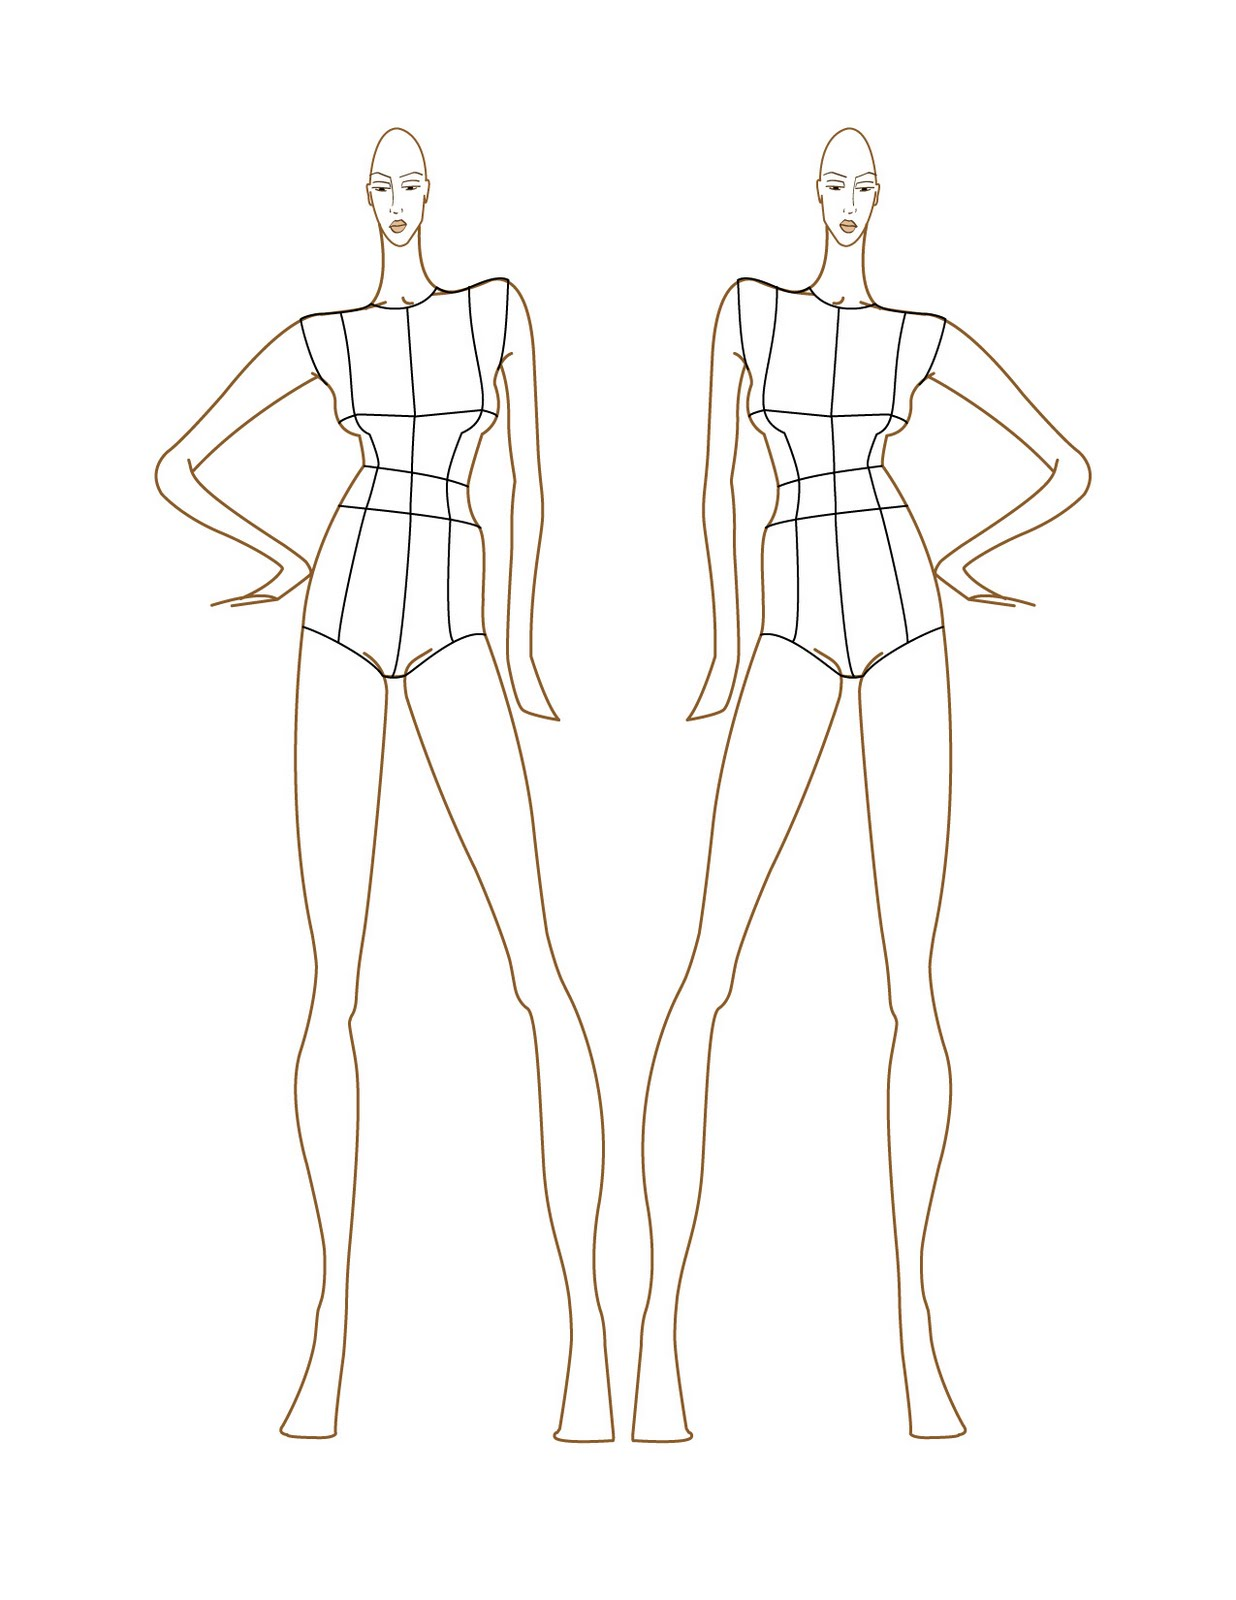 Clothing Design Sketch Templates